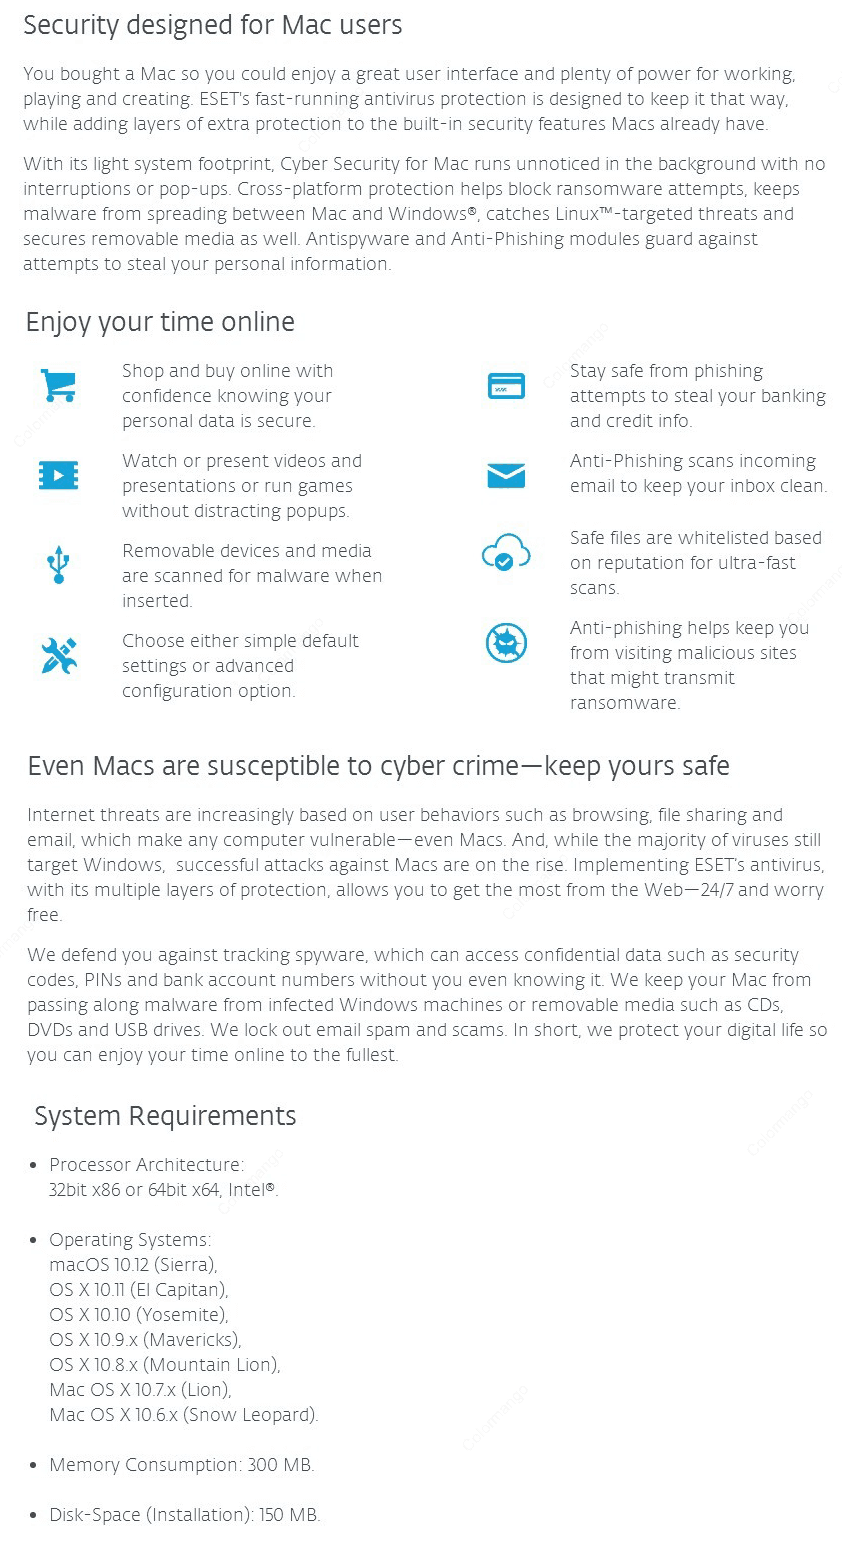 ESET Cyber Security 10 key Features